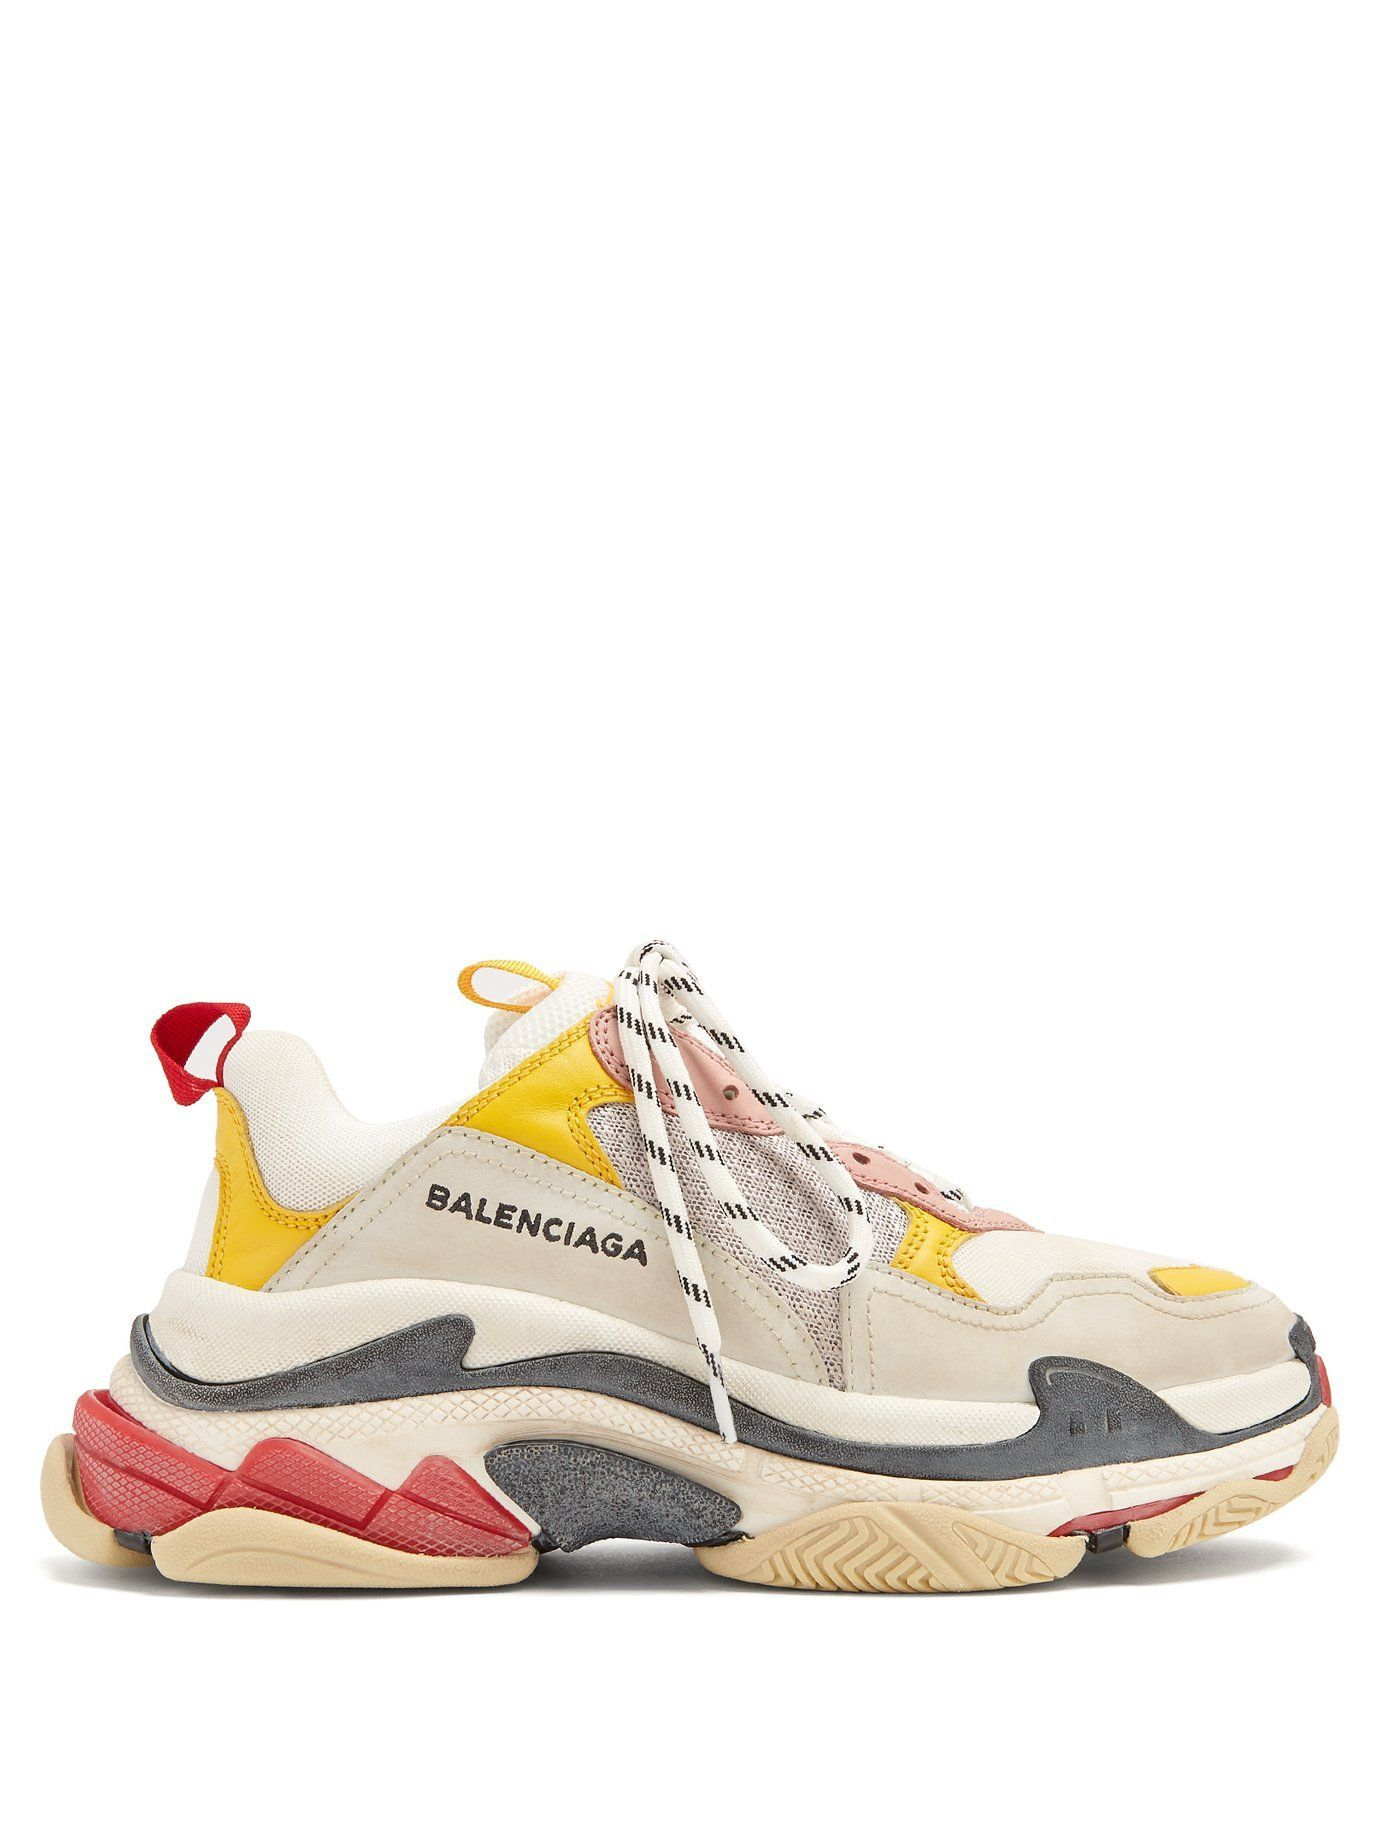 How To Style The  Dad  Sneaker If You re Not Into Athleisure in 2019 ... 4bbb582a6